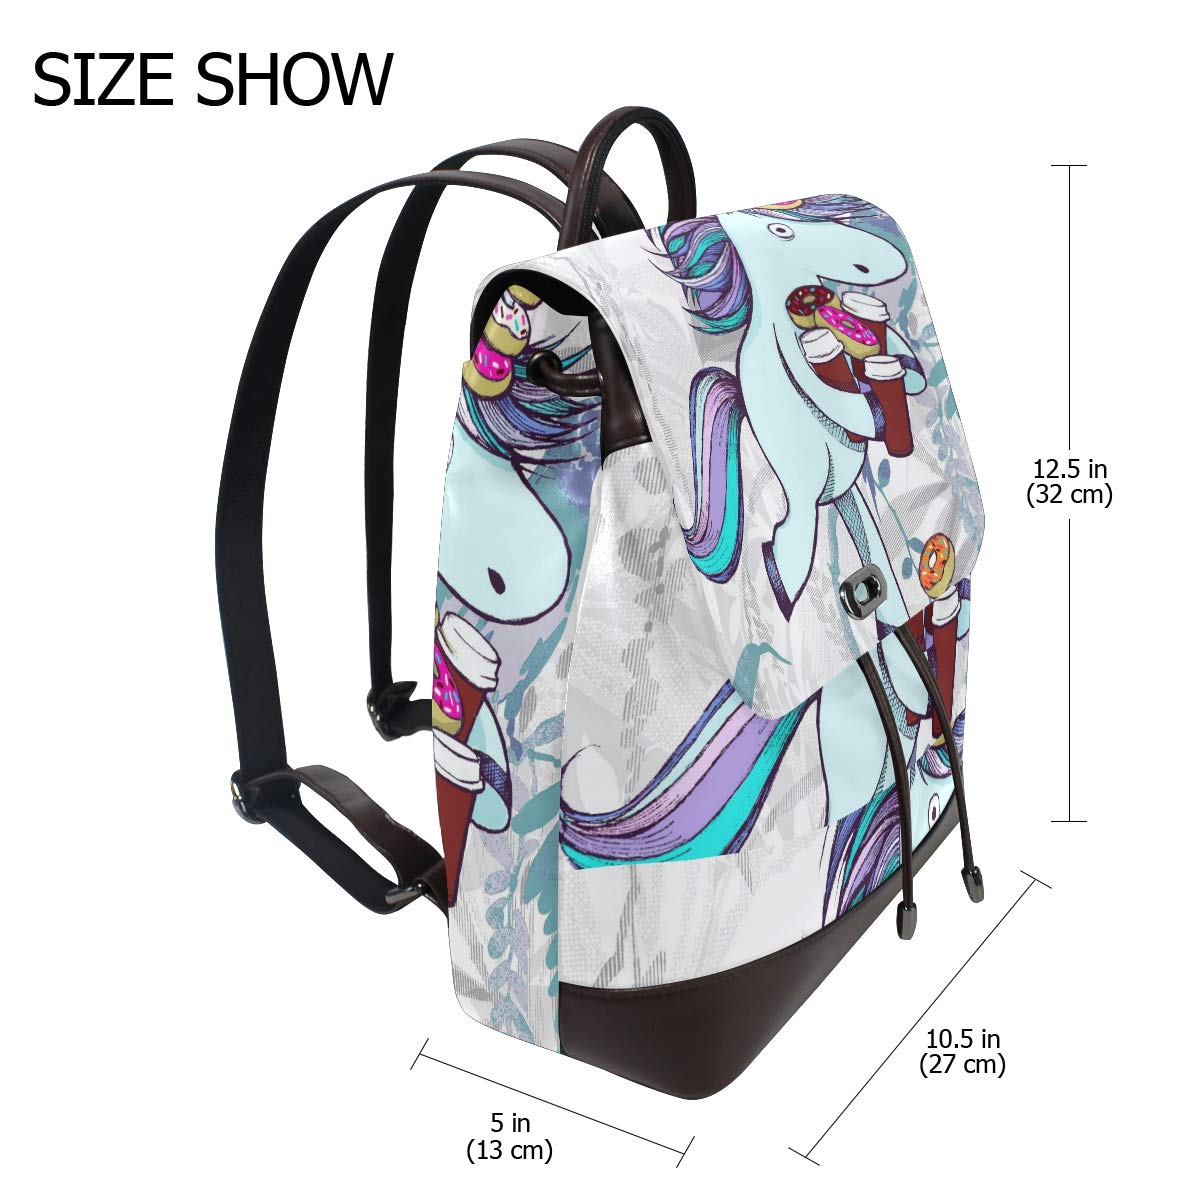 PU Leather Shoulder Bag,Unicorn Shopping Donuts Coffee Backpack,Portable Travel School Rucksack,Satchel with Top Handle